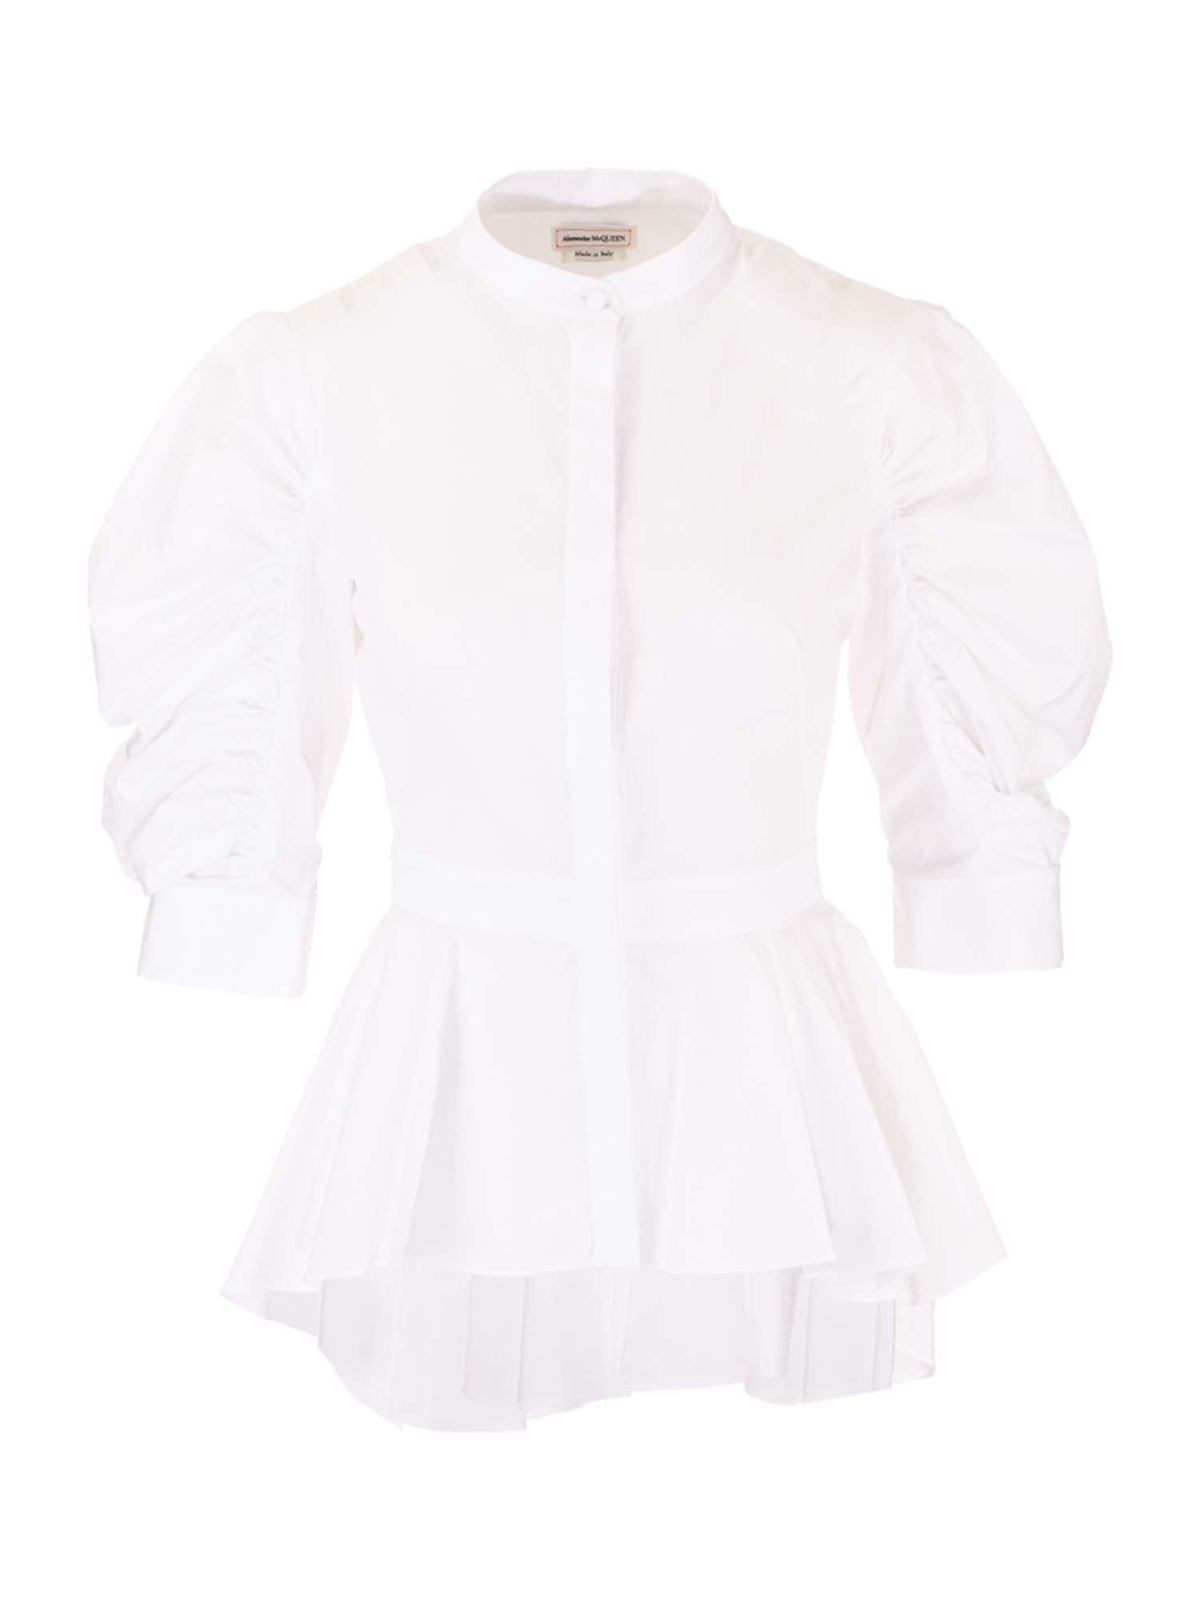 Alexander Mcqueen Cottons GATHERED SLEEVES SHIRT IN WHITE